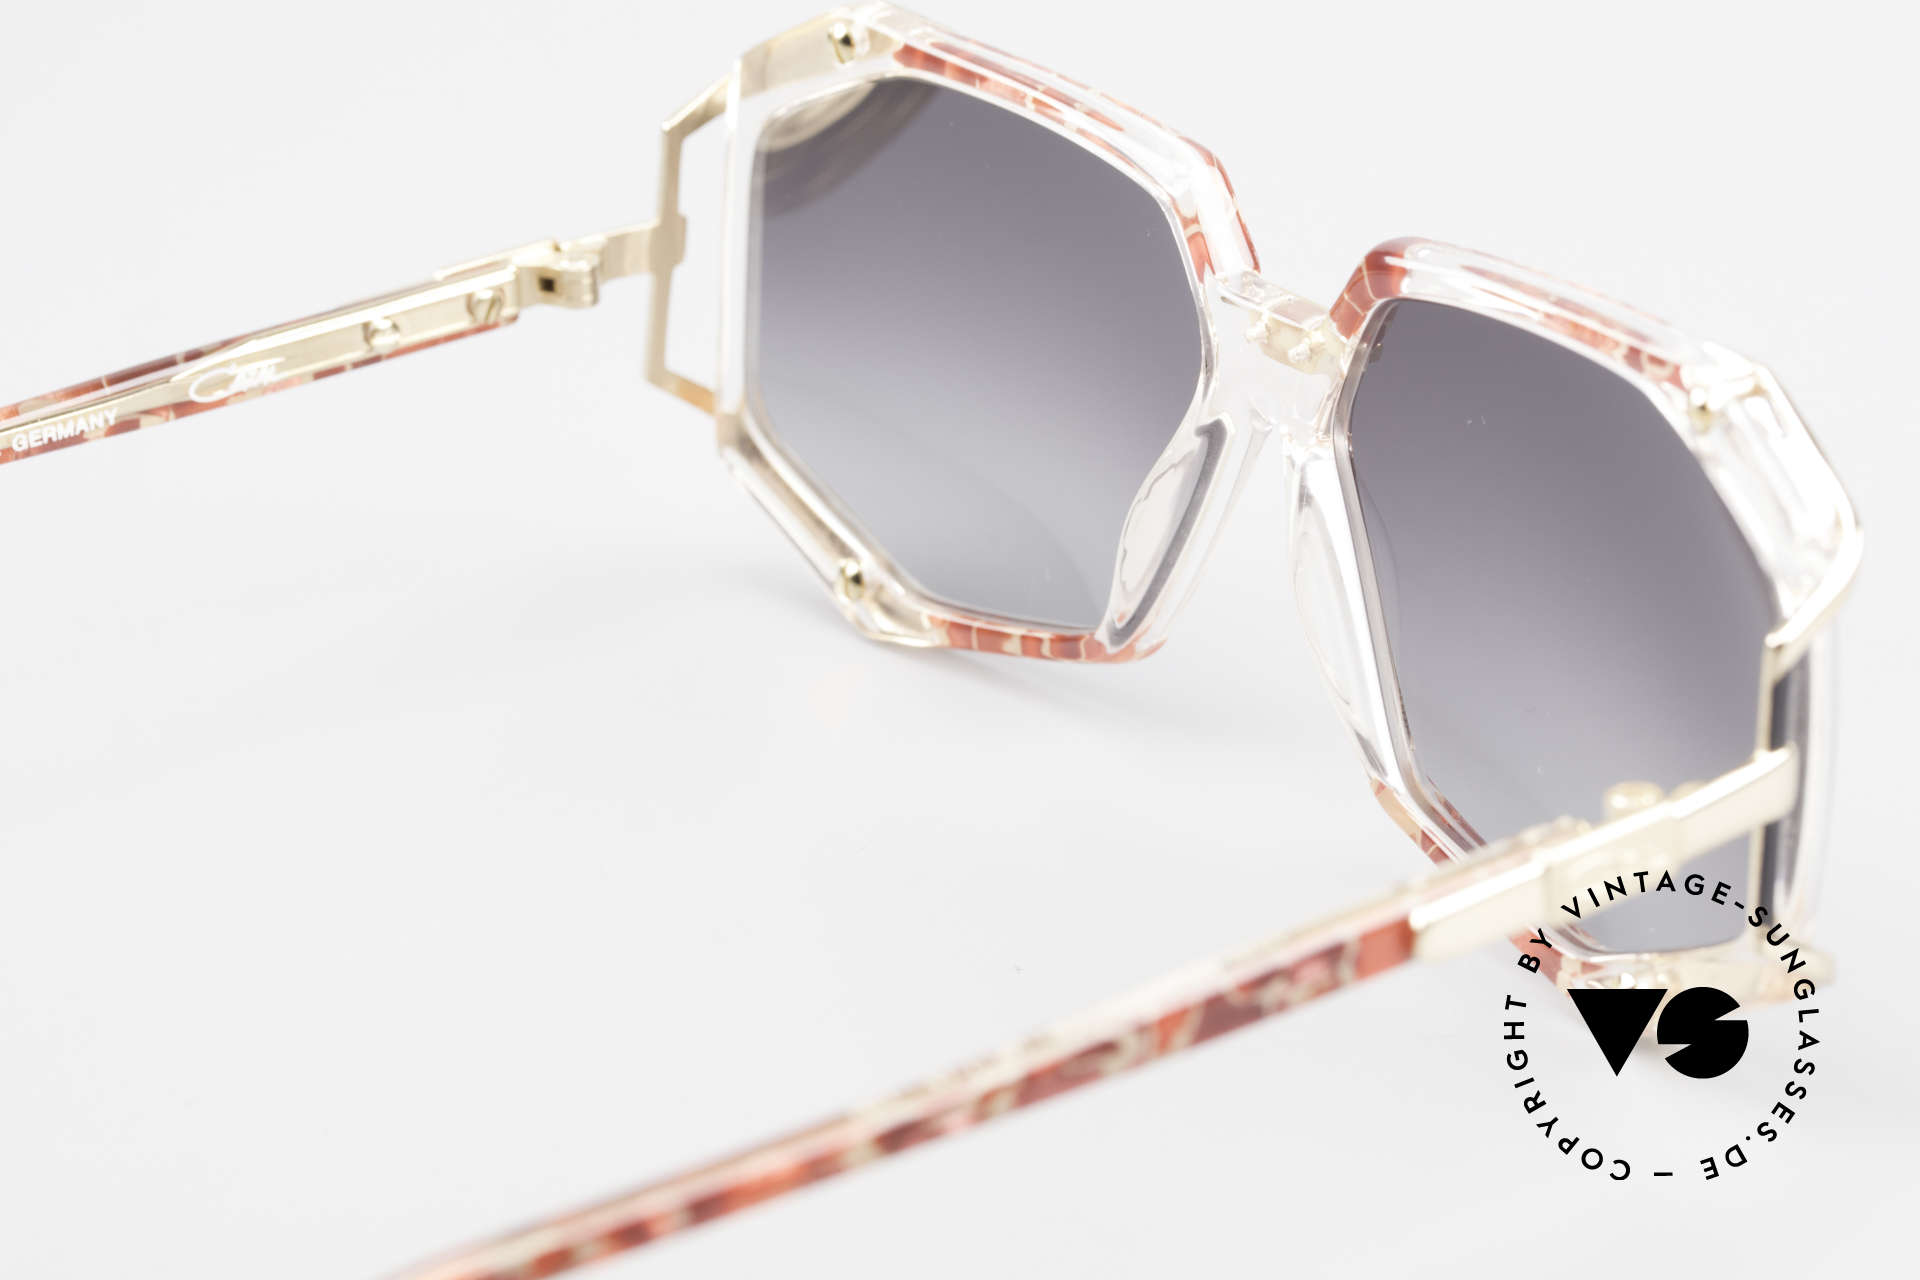 Cazal 355 Spectacular Cazal Sunglasses, frame width 120mm = tight fit (for SMALL heads only!), Made for Women